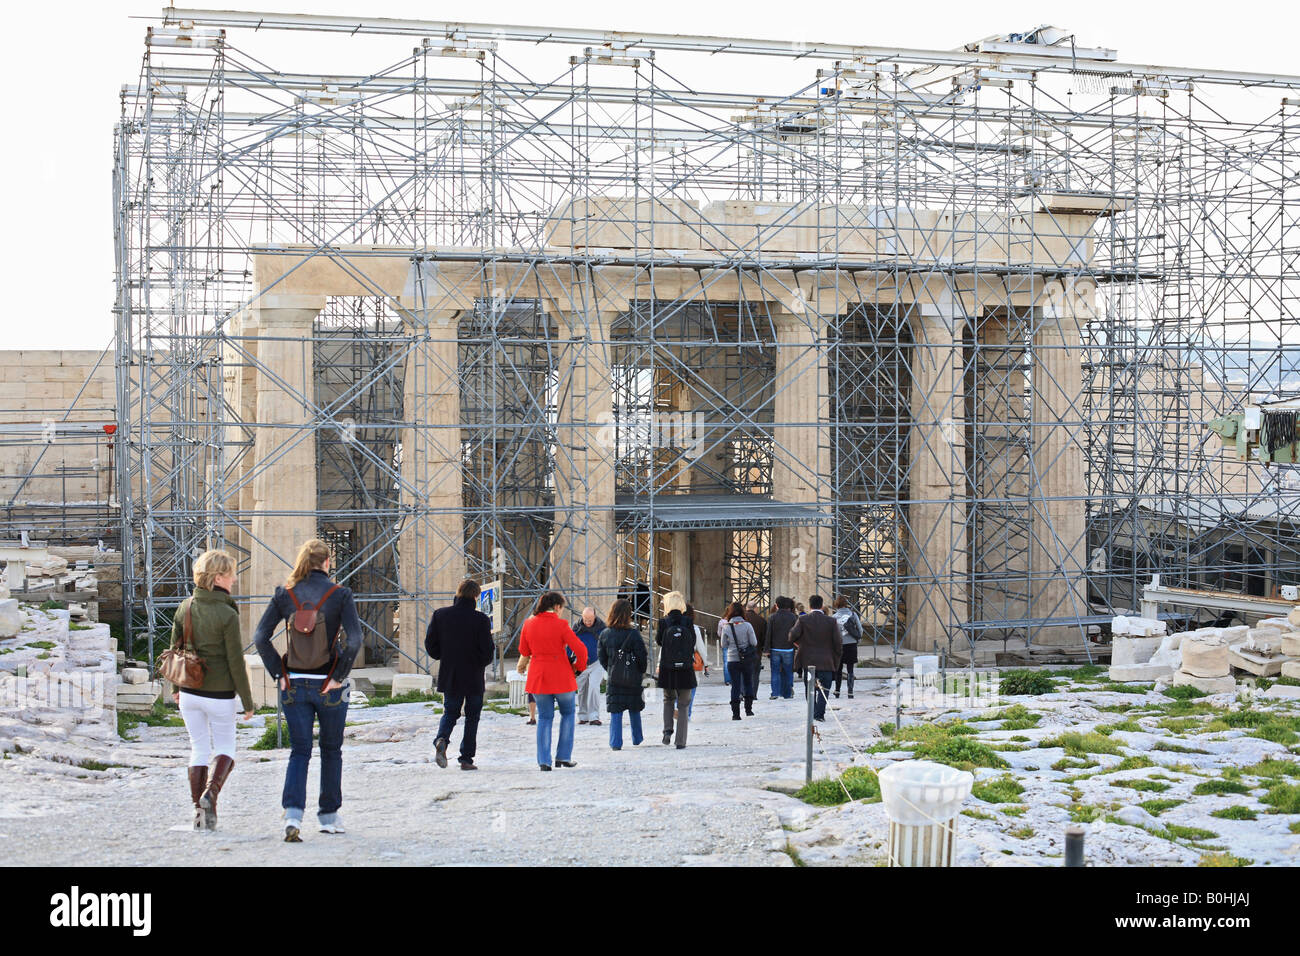 Tour group guided through the Acropolis covered in scaffolding, Athens, Greece - Stock Image